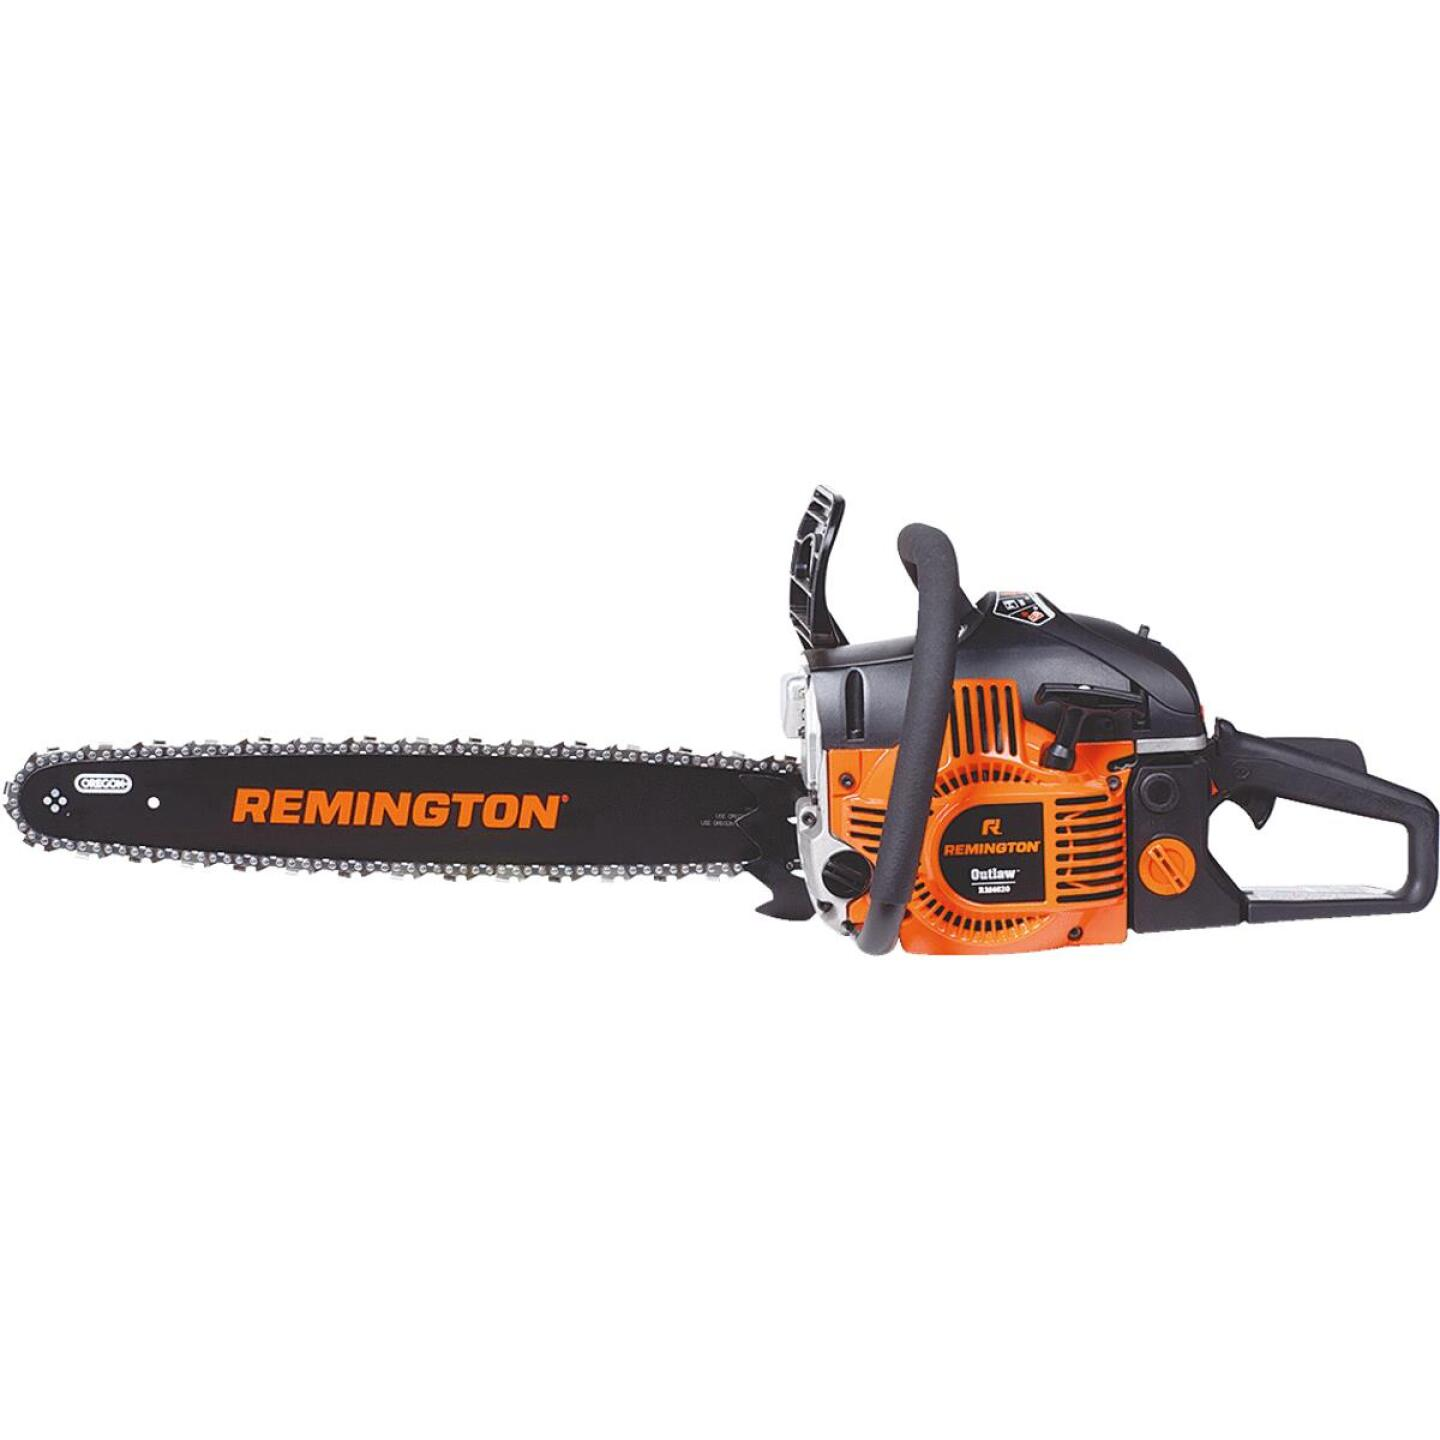 Remington Outlaw RM4620 20 In. 46 CC Gas Chainsaw Image 1